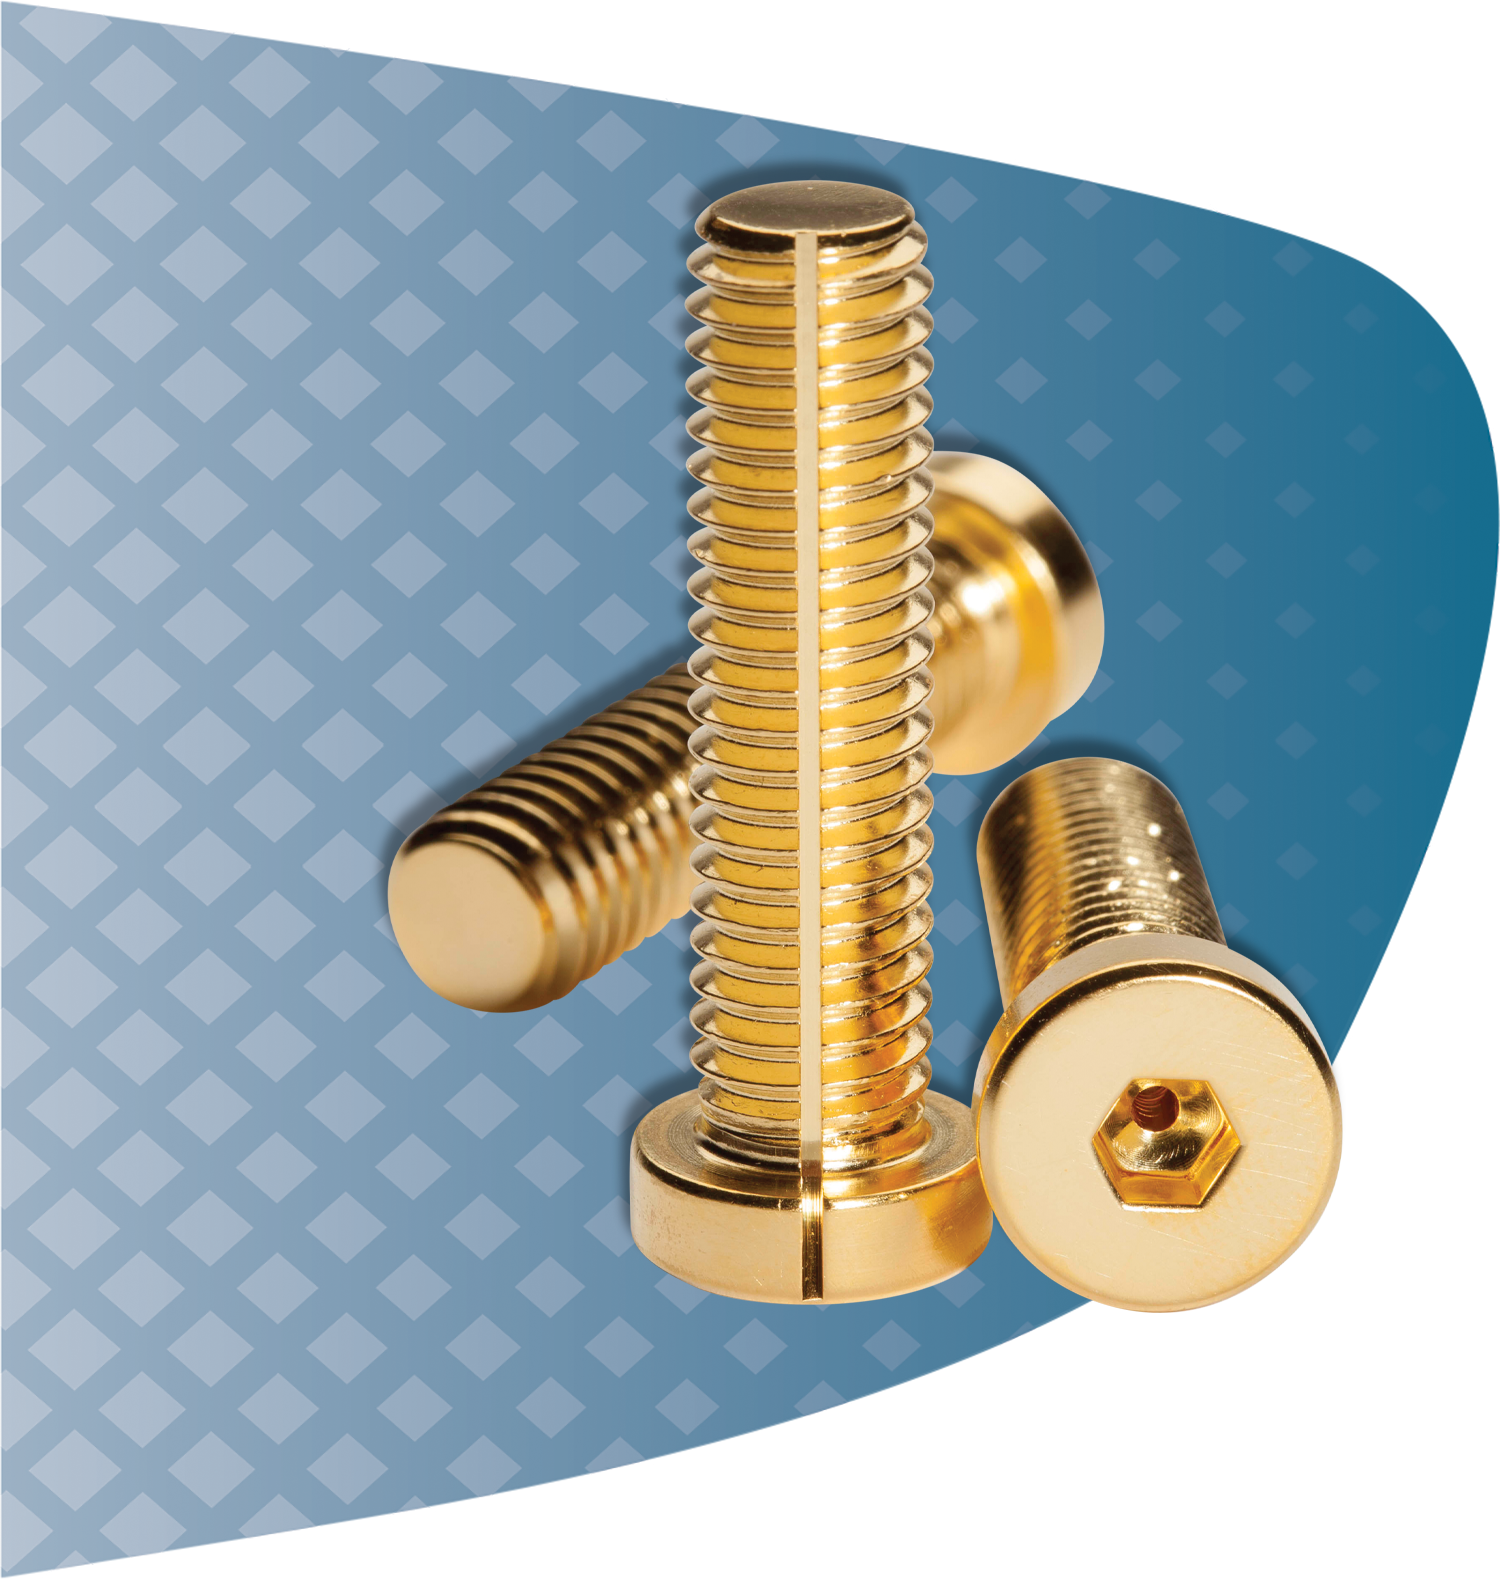 UC RediVac® Finish Options such as gold plated screws